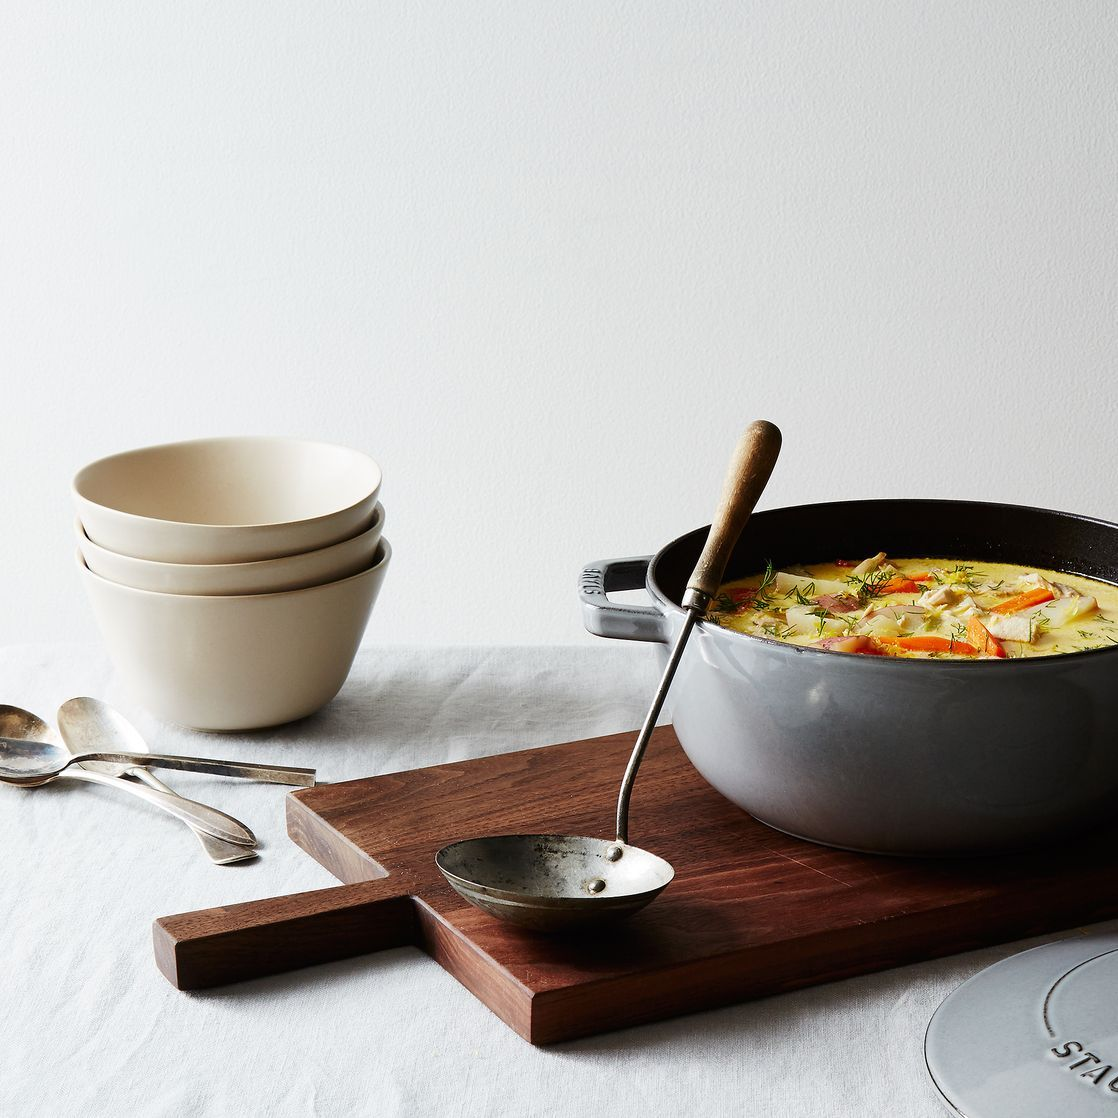 x Staub Piglet Essential French Oven, 3.75QT | Oven, Ware F.C. and Room